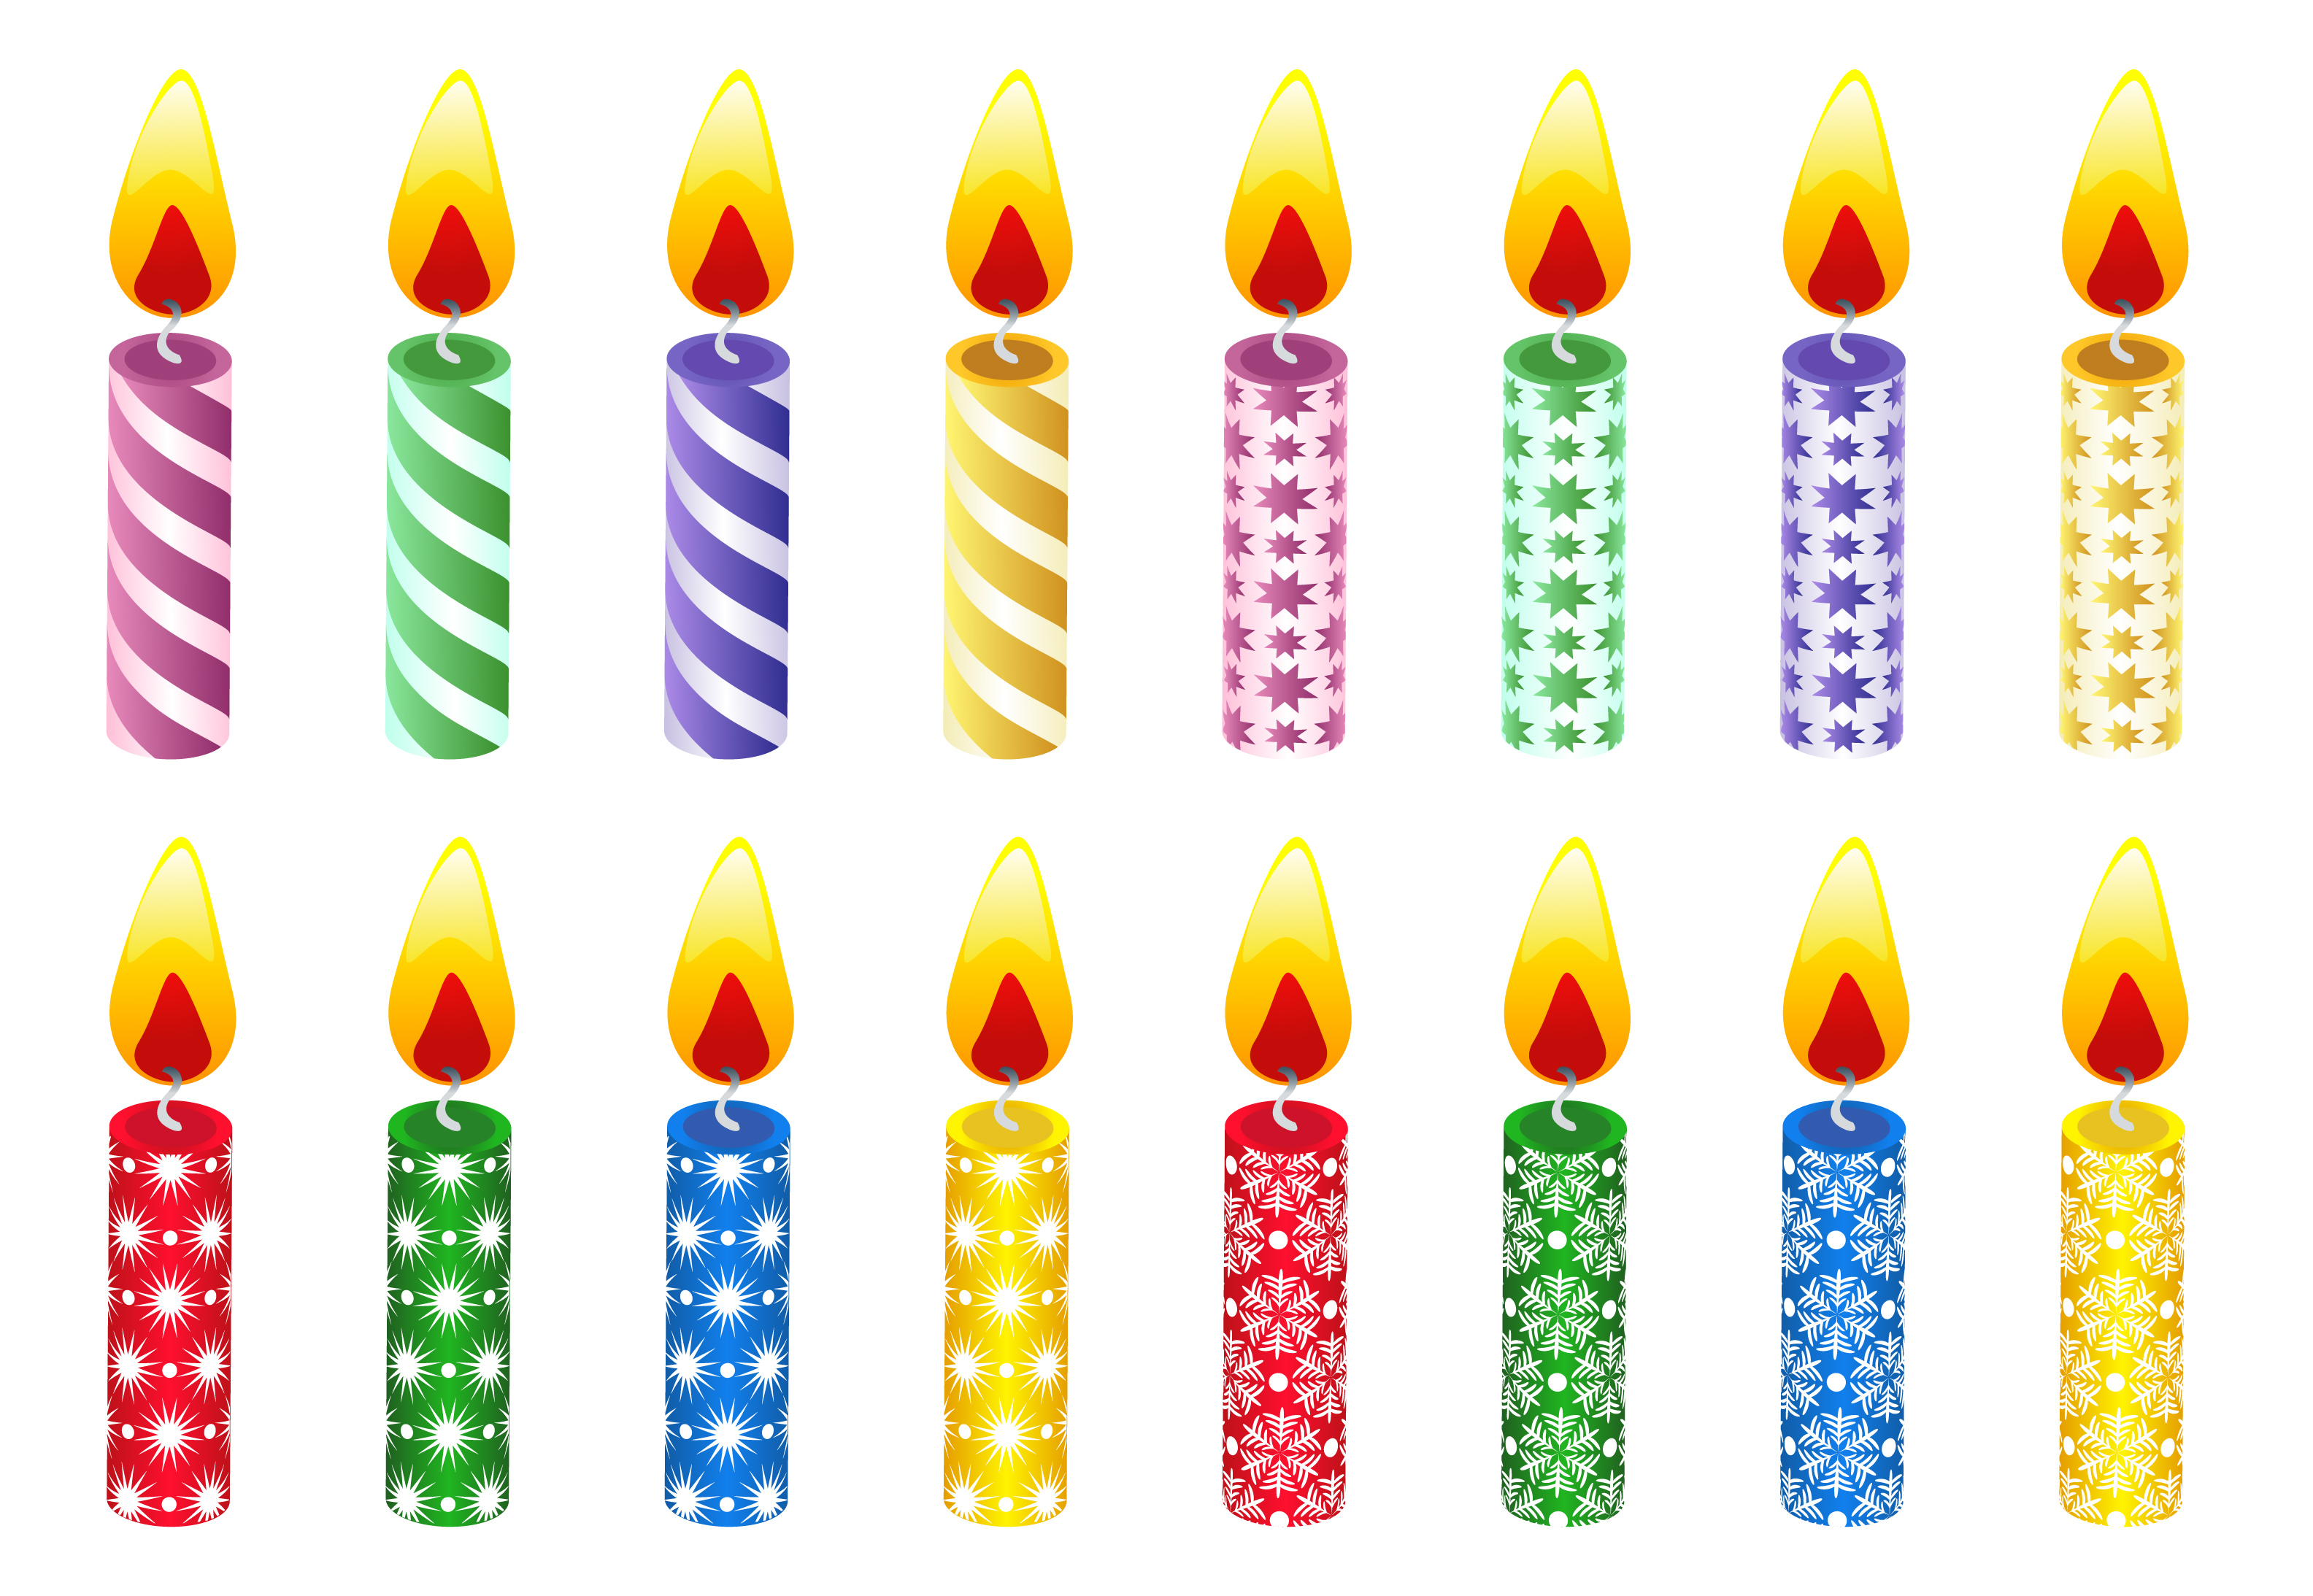 Clip Art Birthday Candle Clipart birthday candle clipart kid this is a great set of candles to use for games or classroom